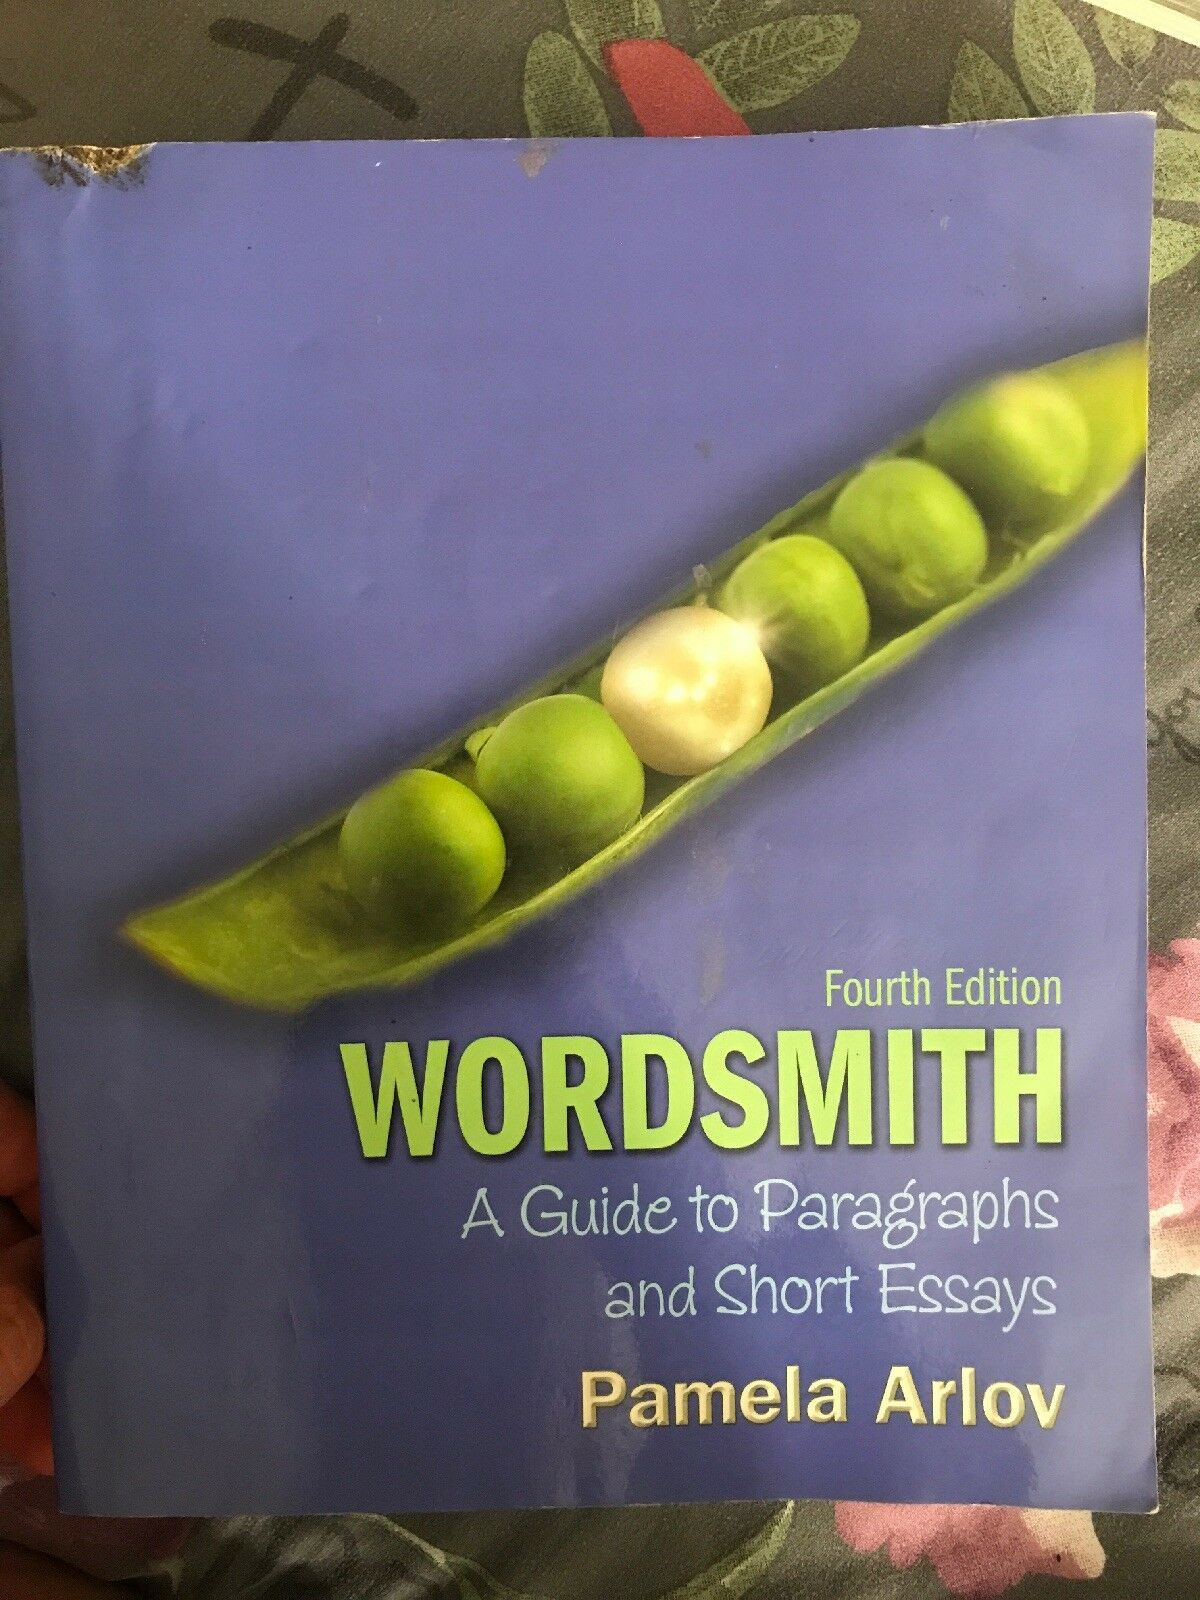 Wordsmith : A Guide to Paragraphs and Short Essays by Pamela Arlov (2009,  Paperback) | eBay